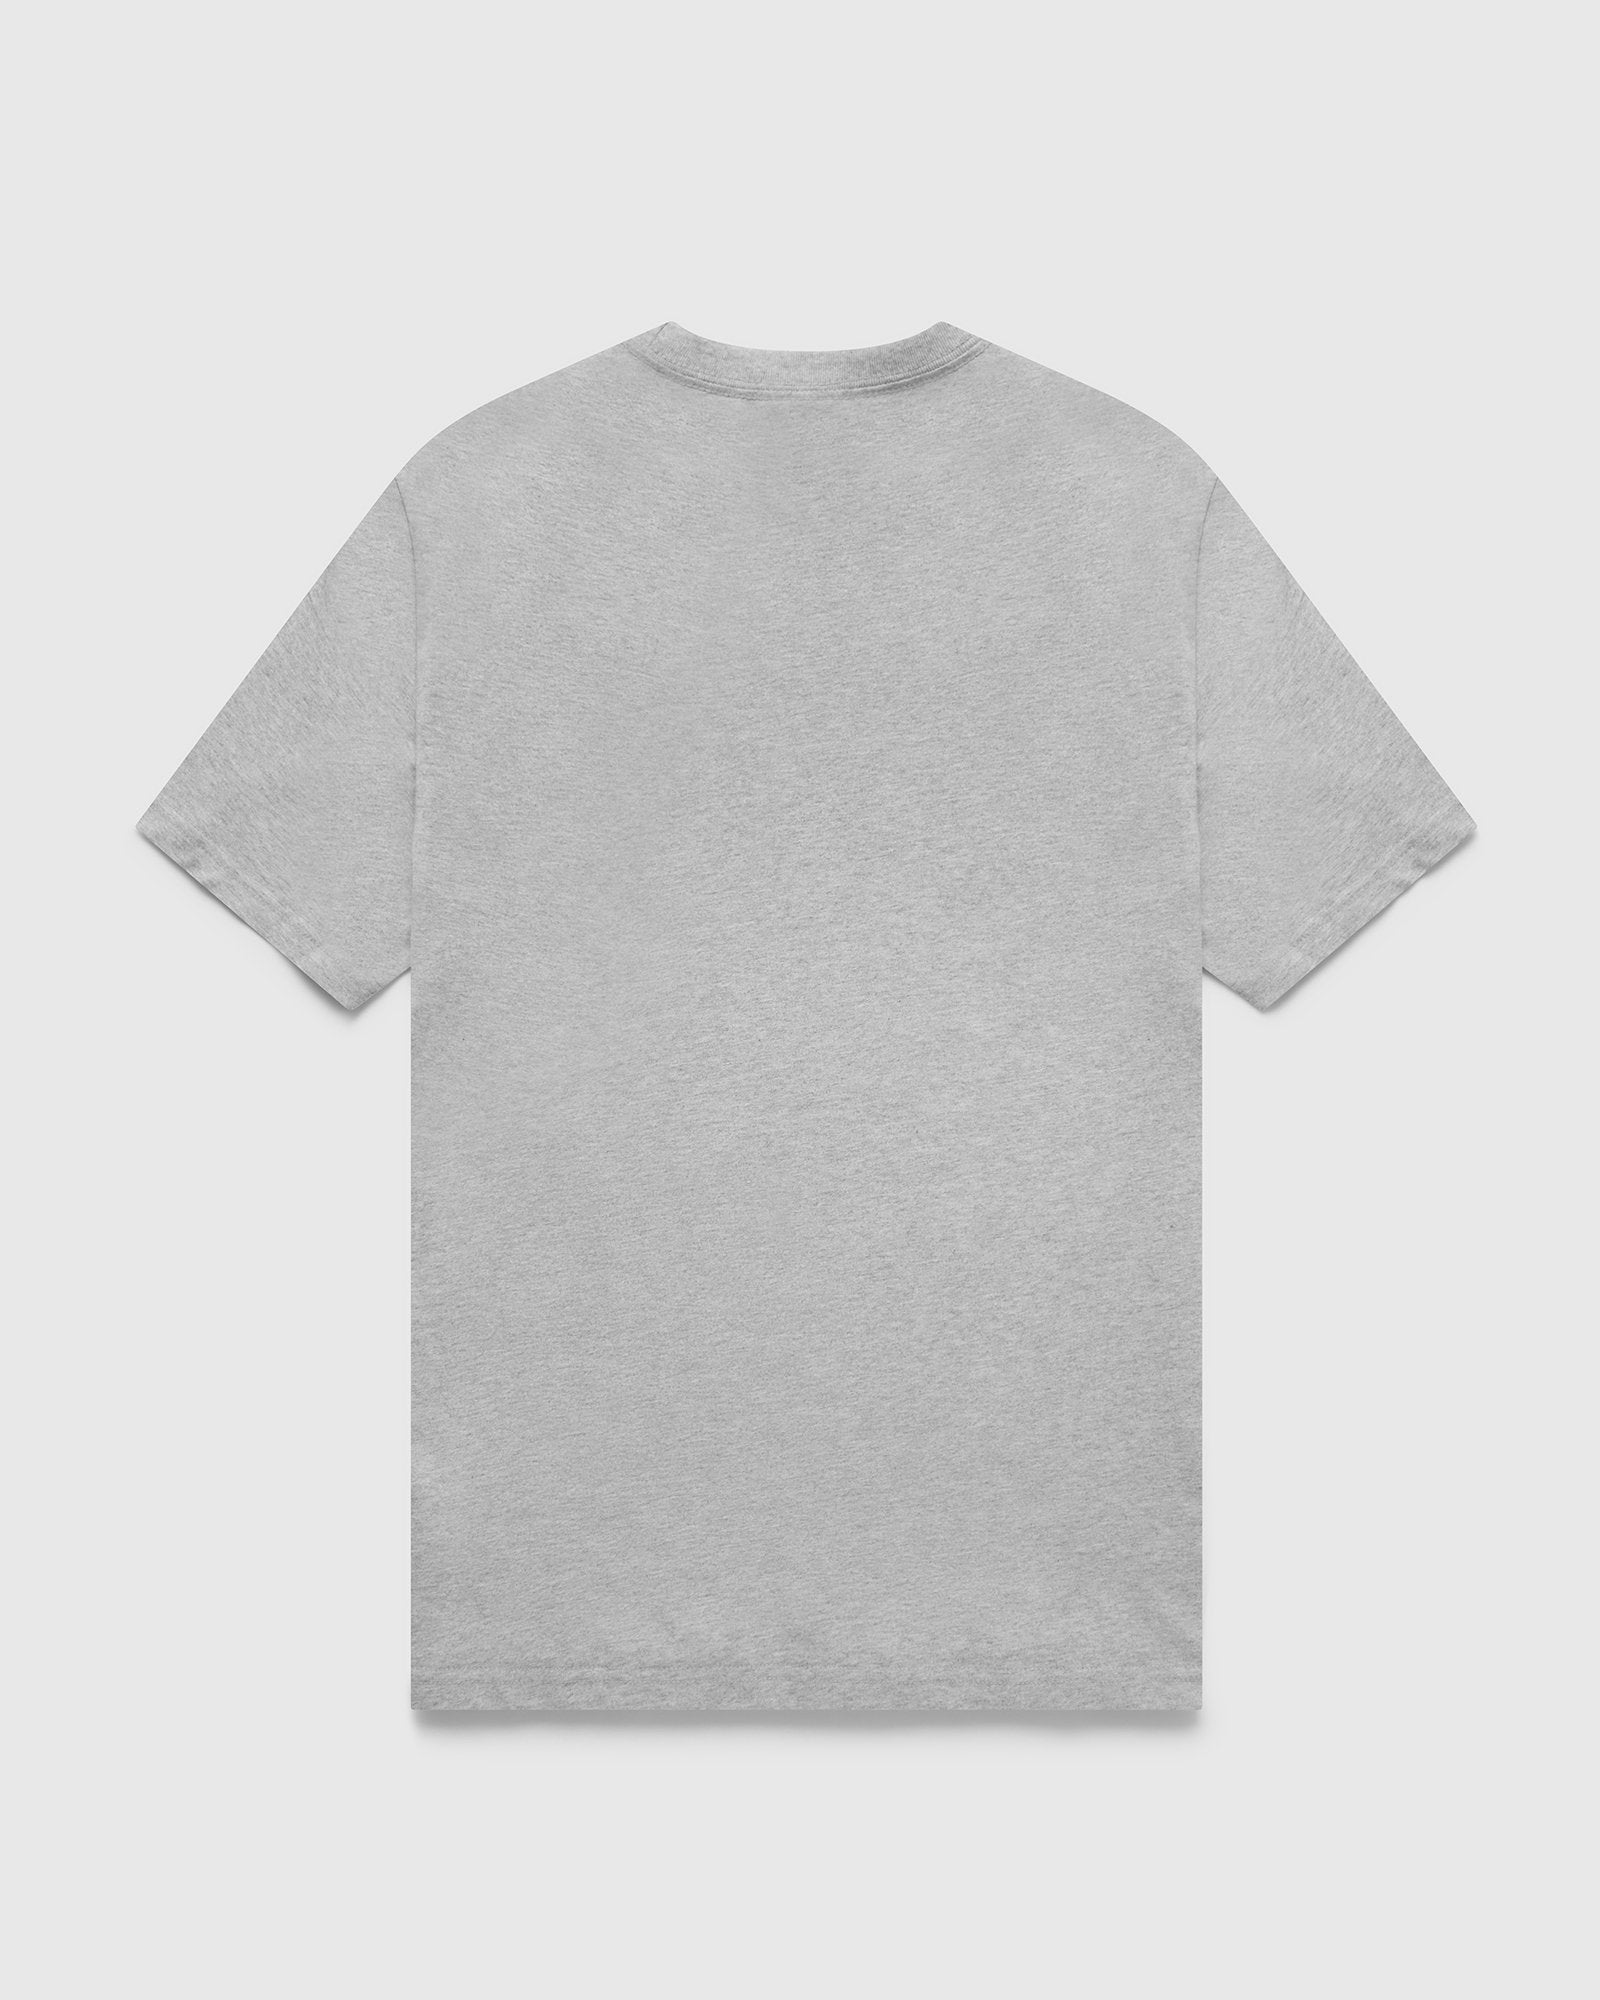 CIRCLE T-SHIRT - HEATHER GREY IMAGE #2